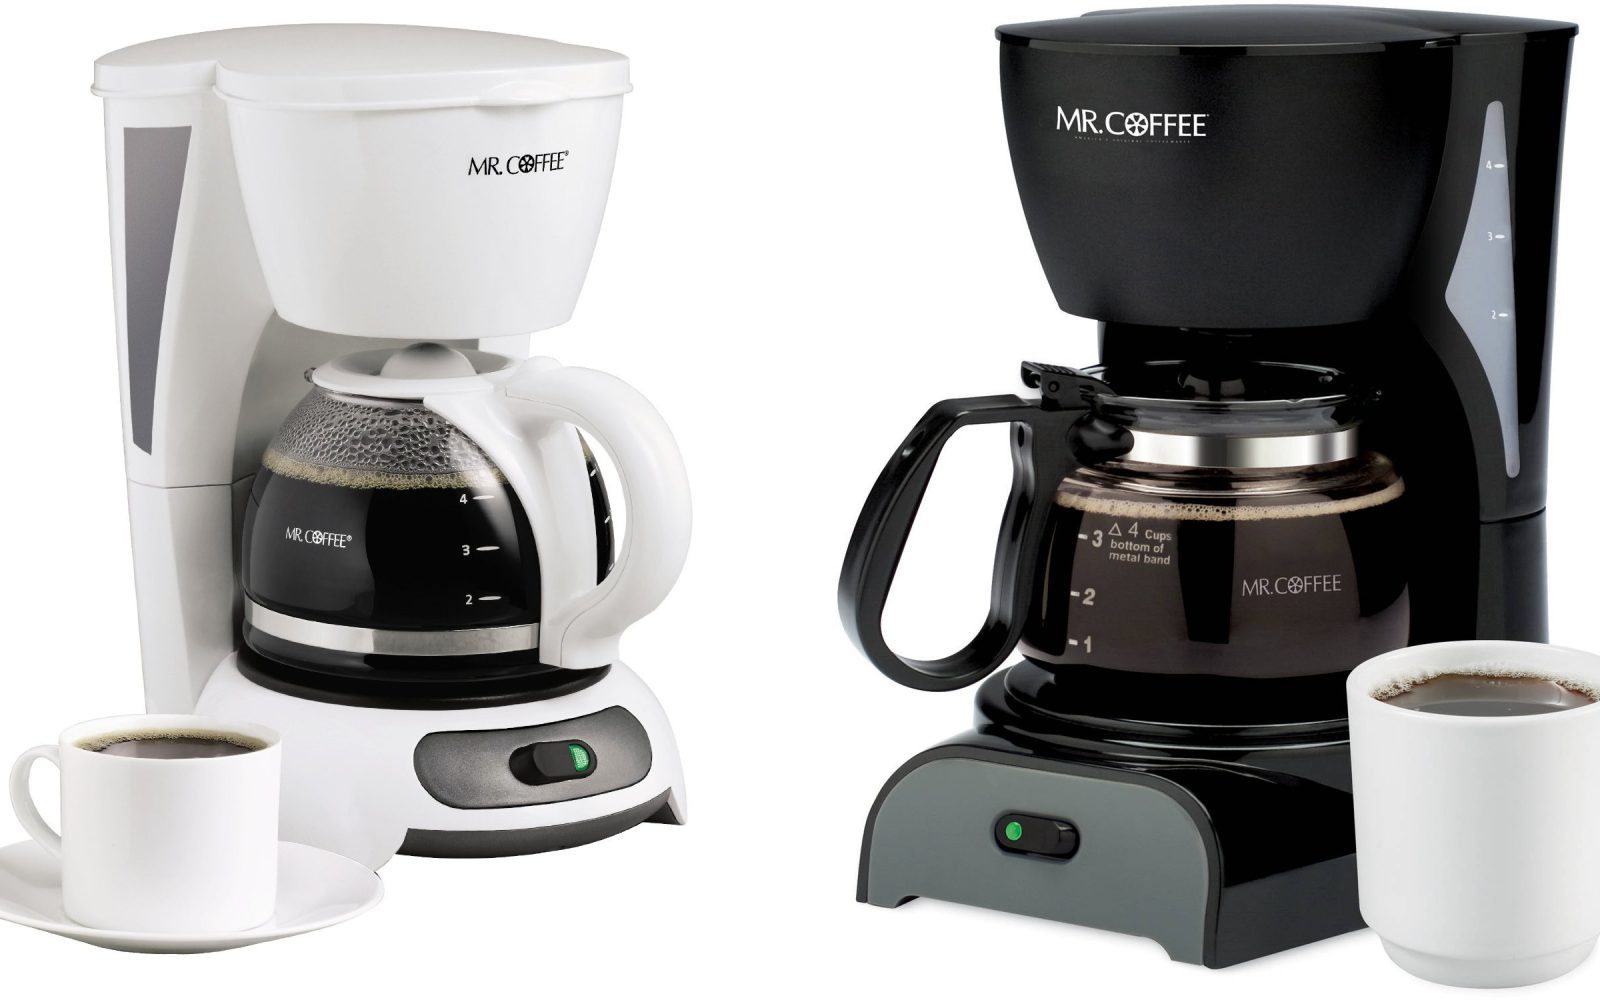 Grab One Of These Mini Mr Coffee 4 Cup Coffee Makers From Just 10